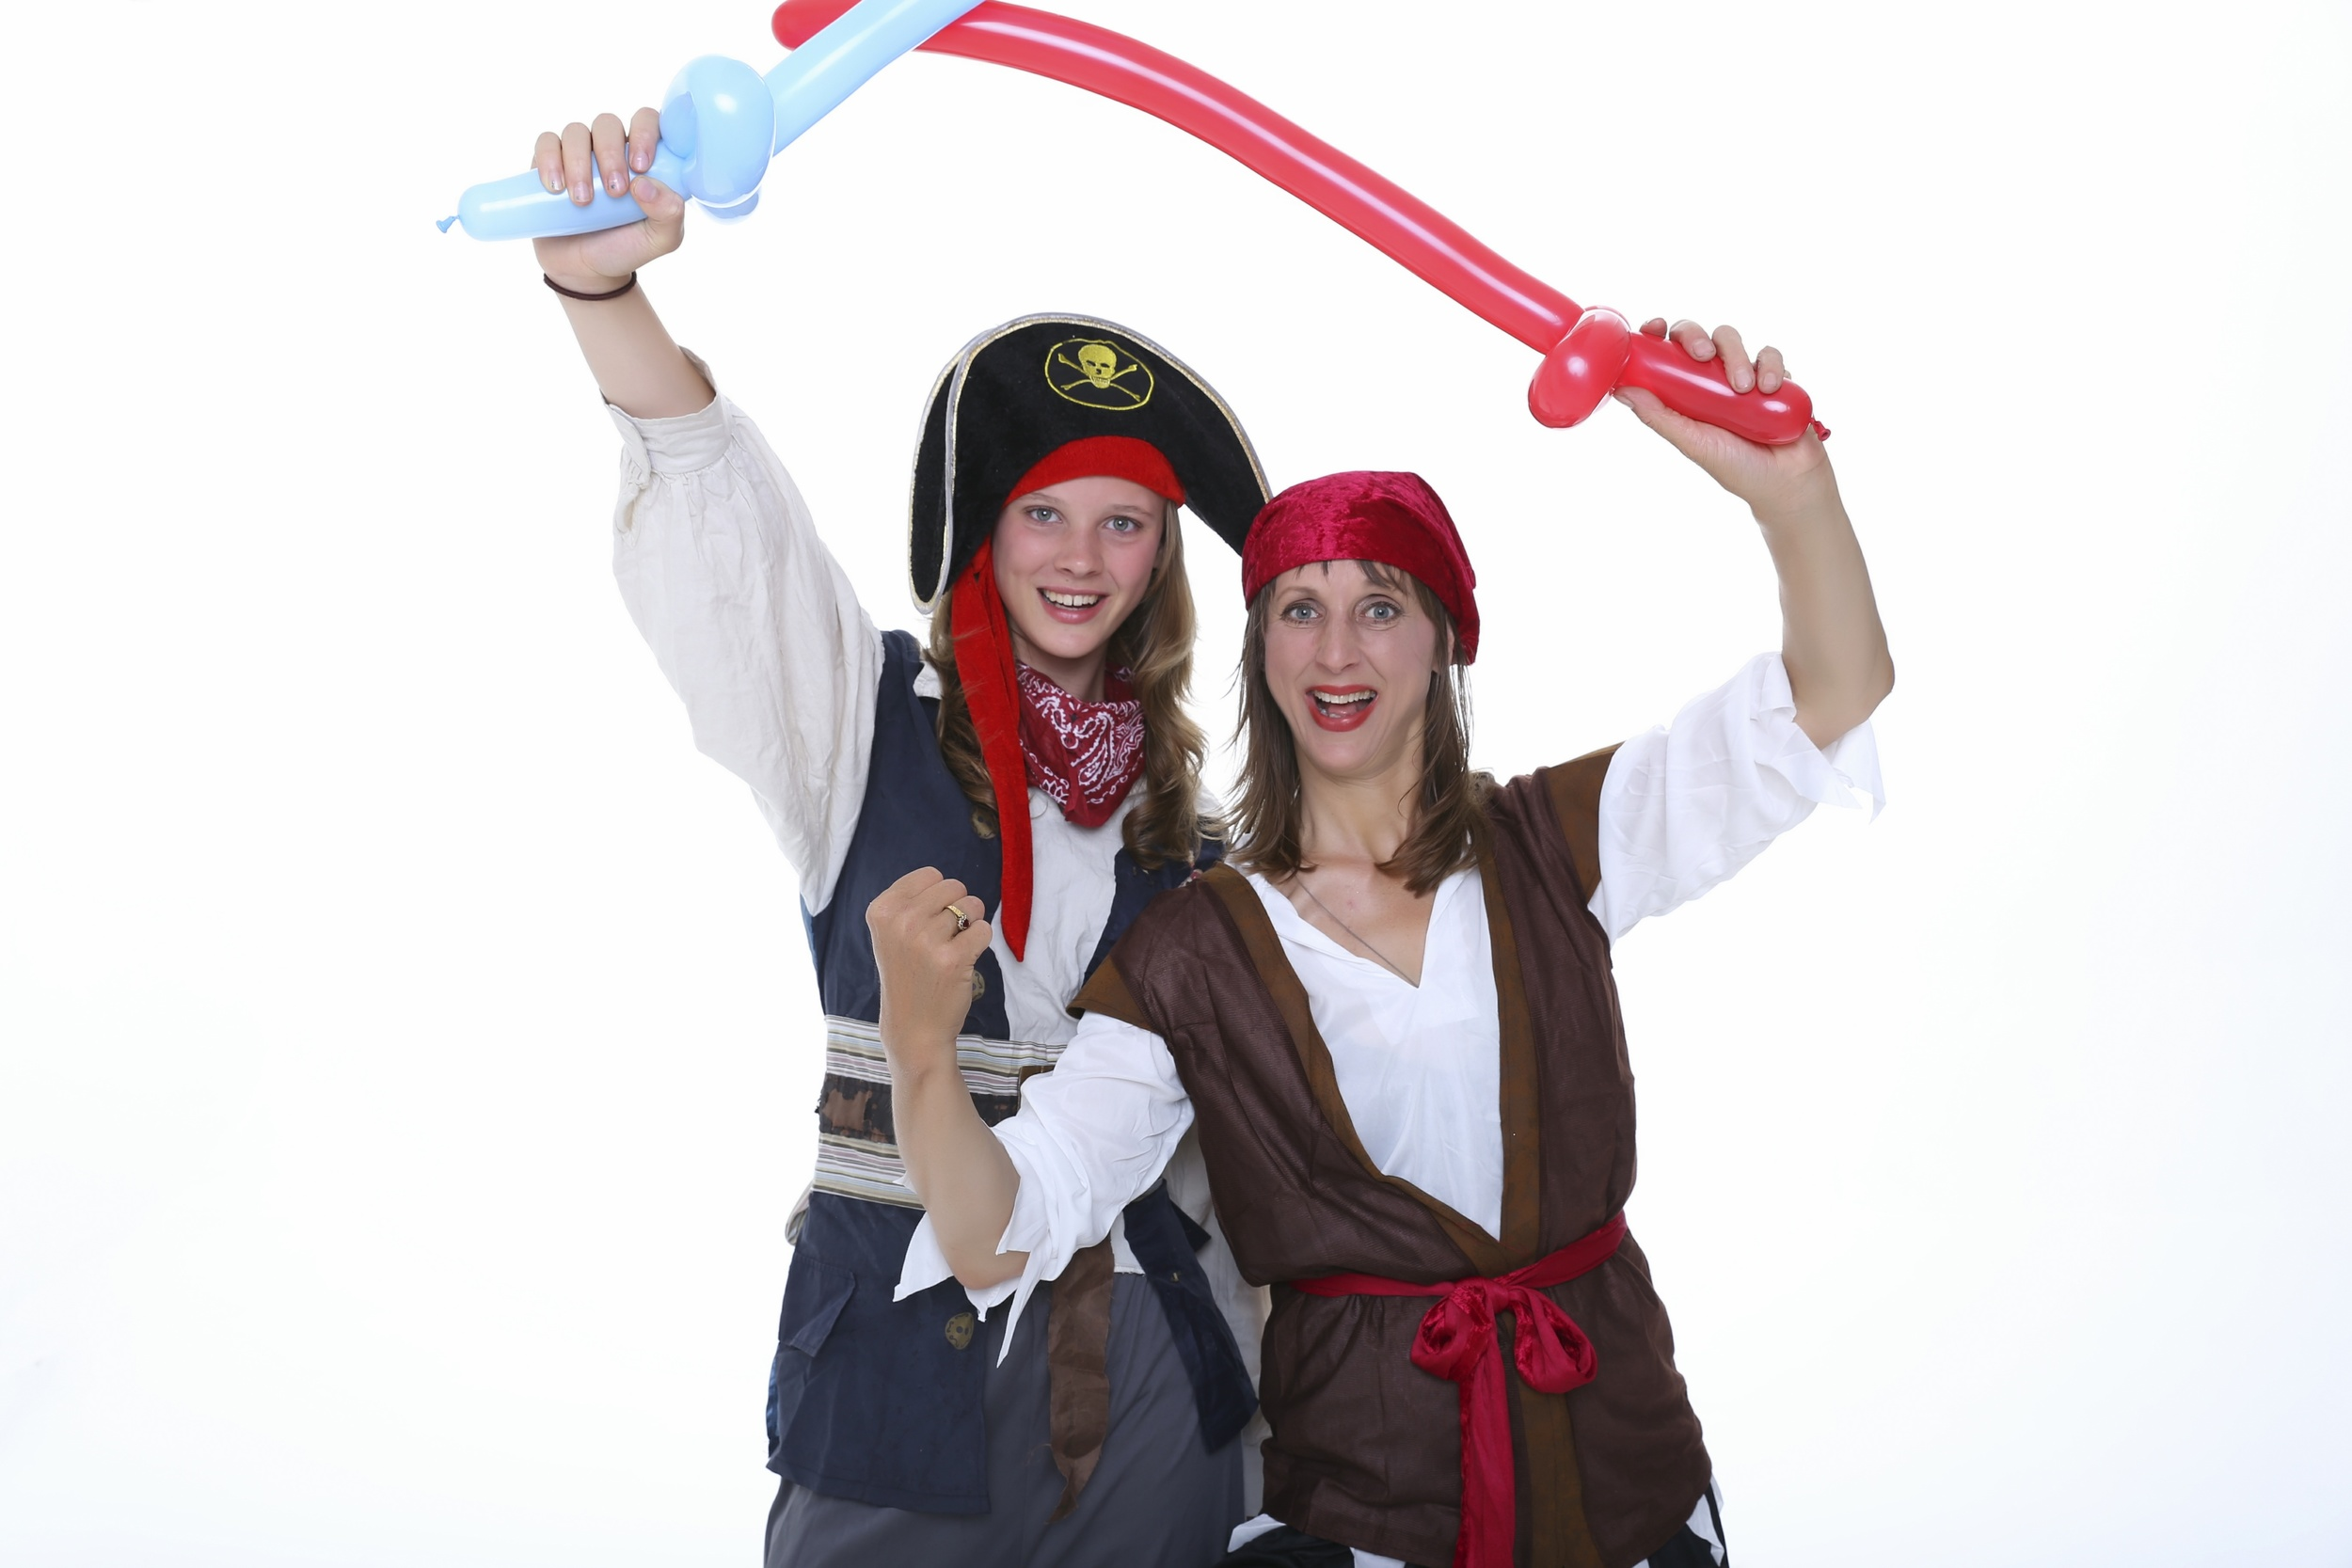 Angie and Alabama pirate 2014.jpg